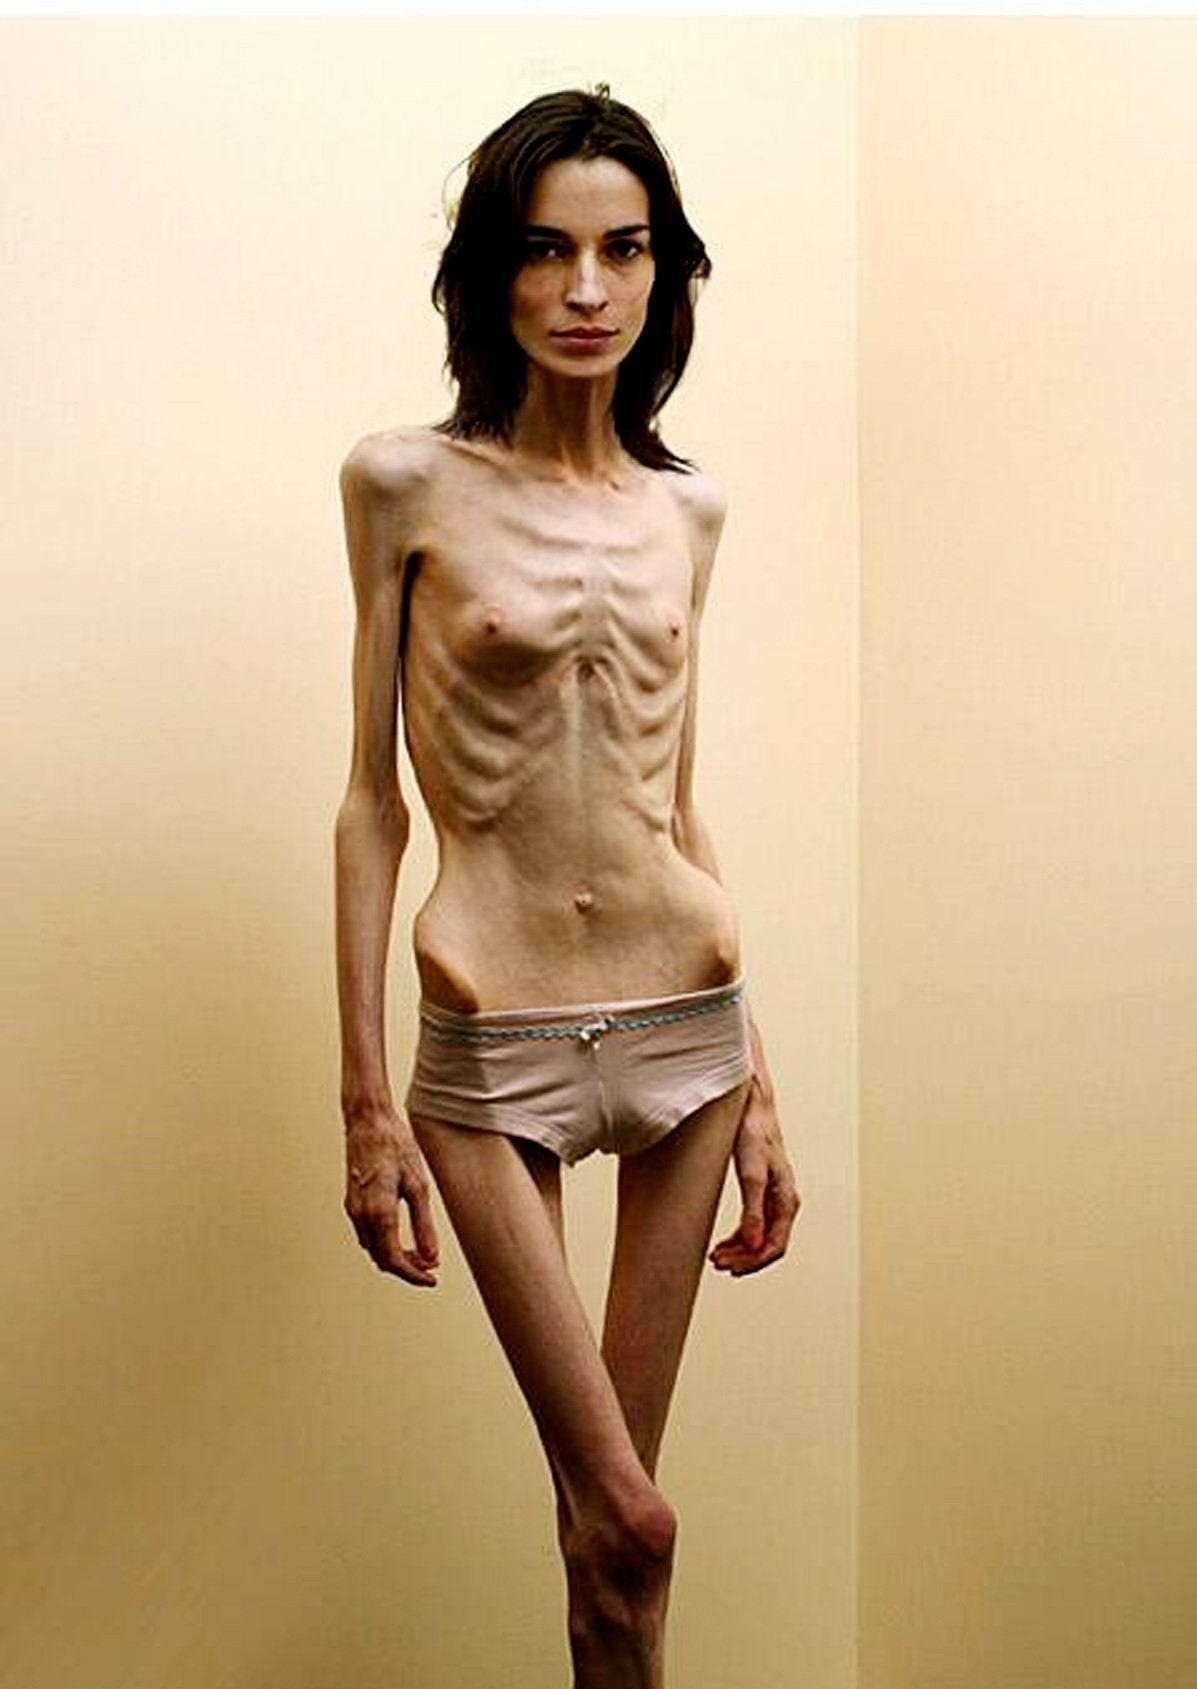 from Darian anorexic girl porn pic